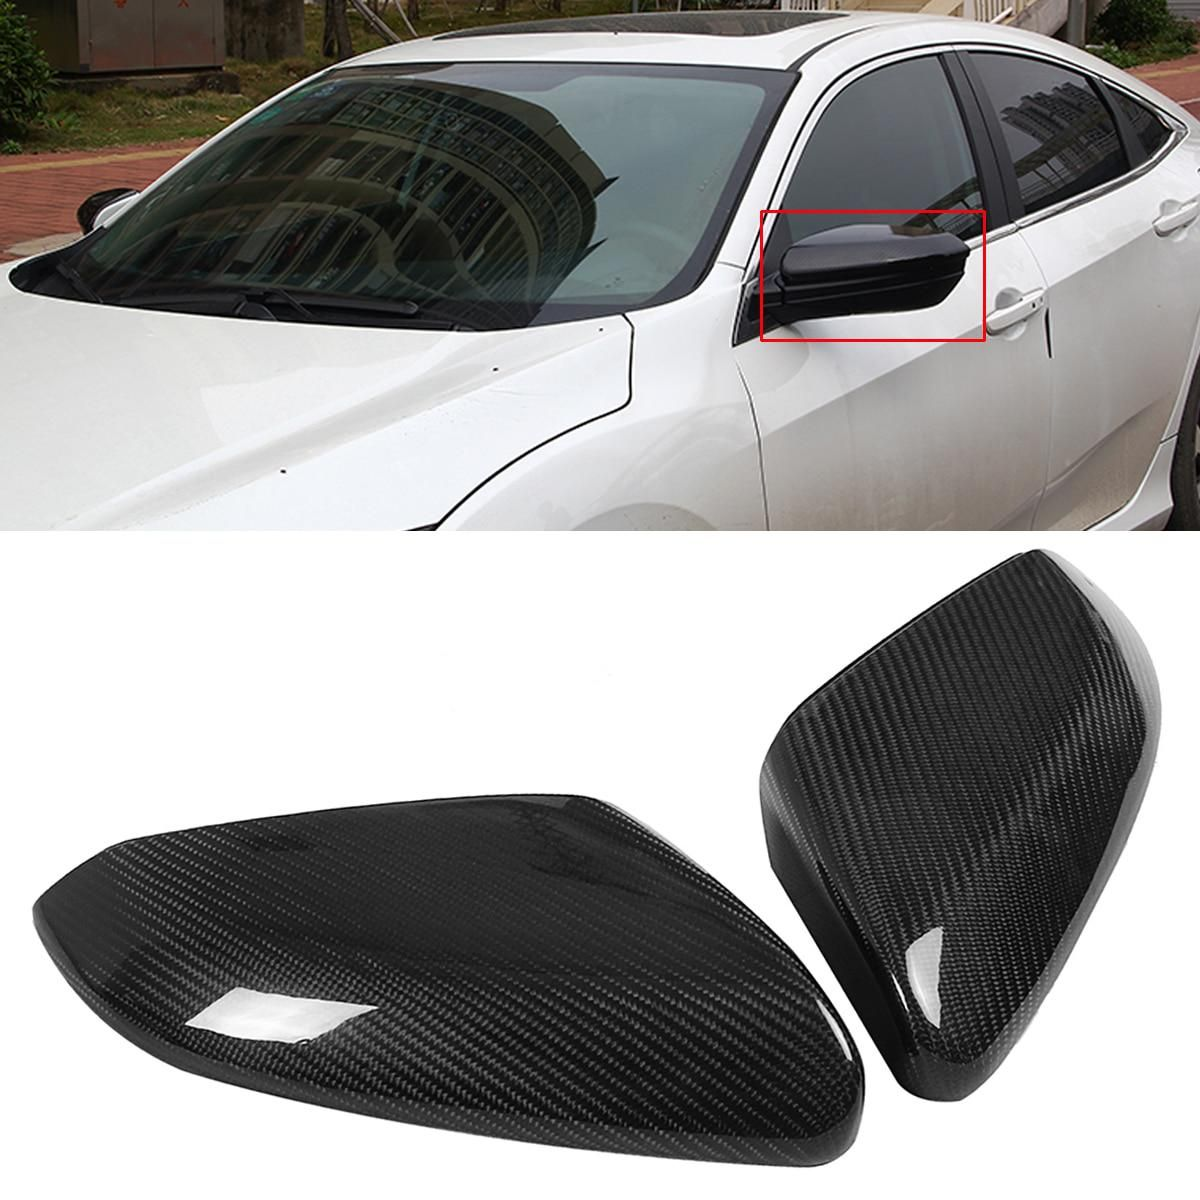 Autoleader 1pair Direct Replacement Carbon Fiber Side Mirror Covers Exterior Accessories Cover Caps Honda Civic Accessories Civic Accessories Honda Civic 2016